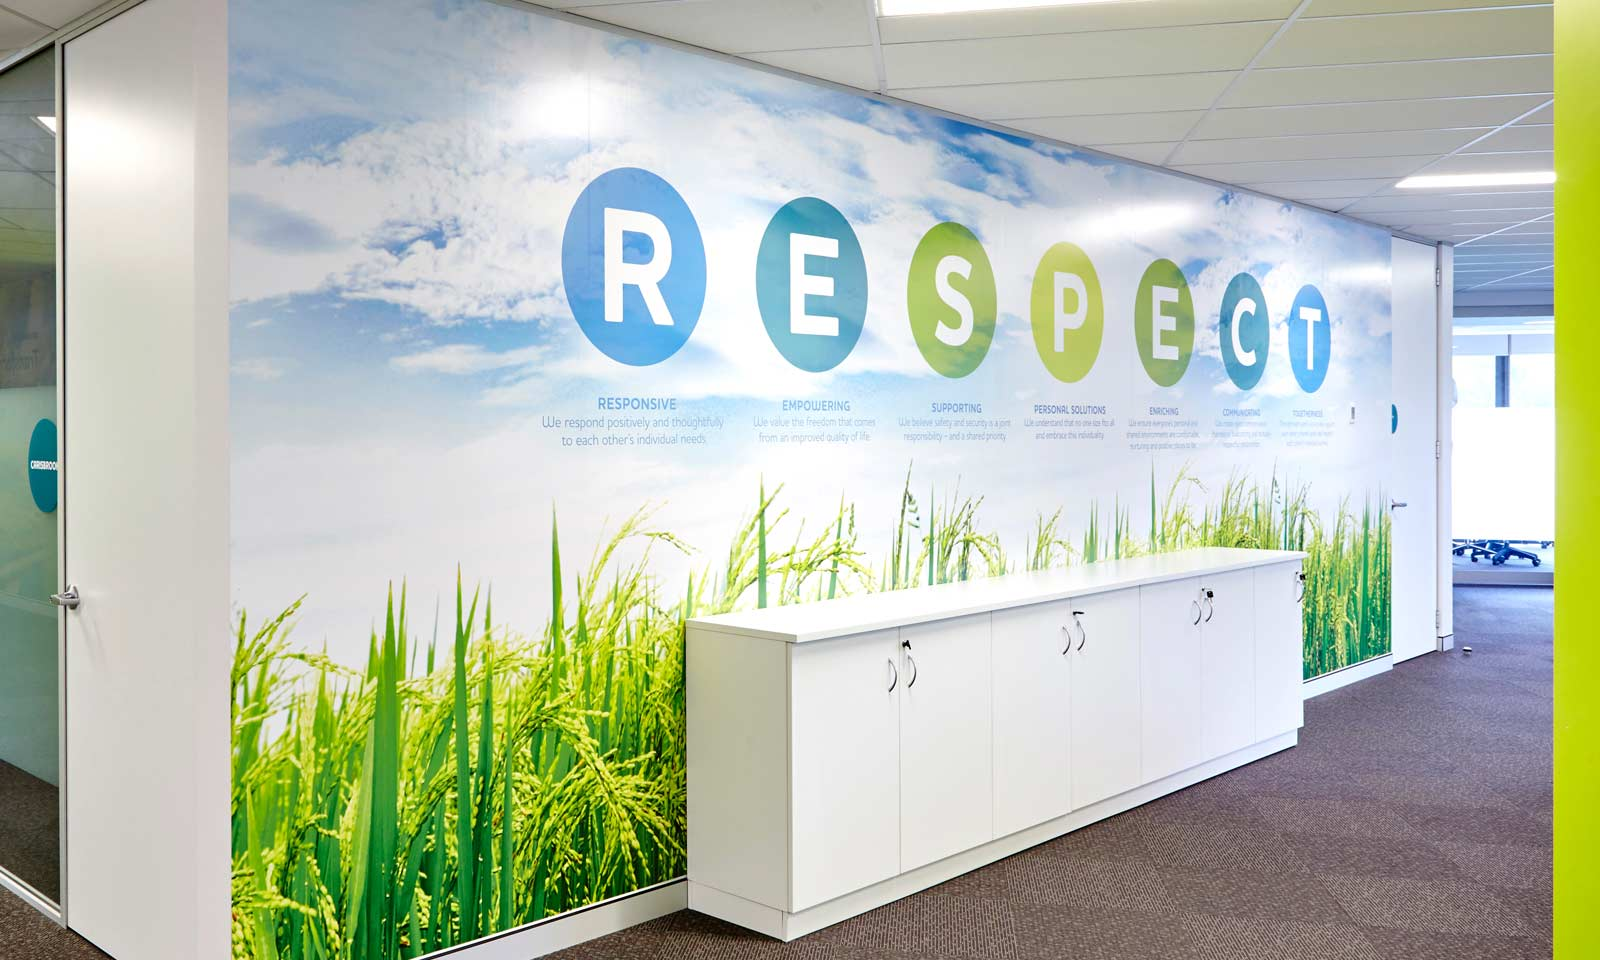 Sydney branding company interiors, BaptistCare RESPECT values internal signage part of the branded environment.